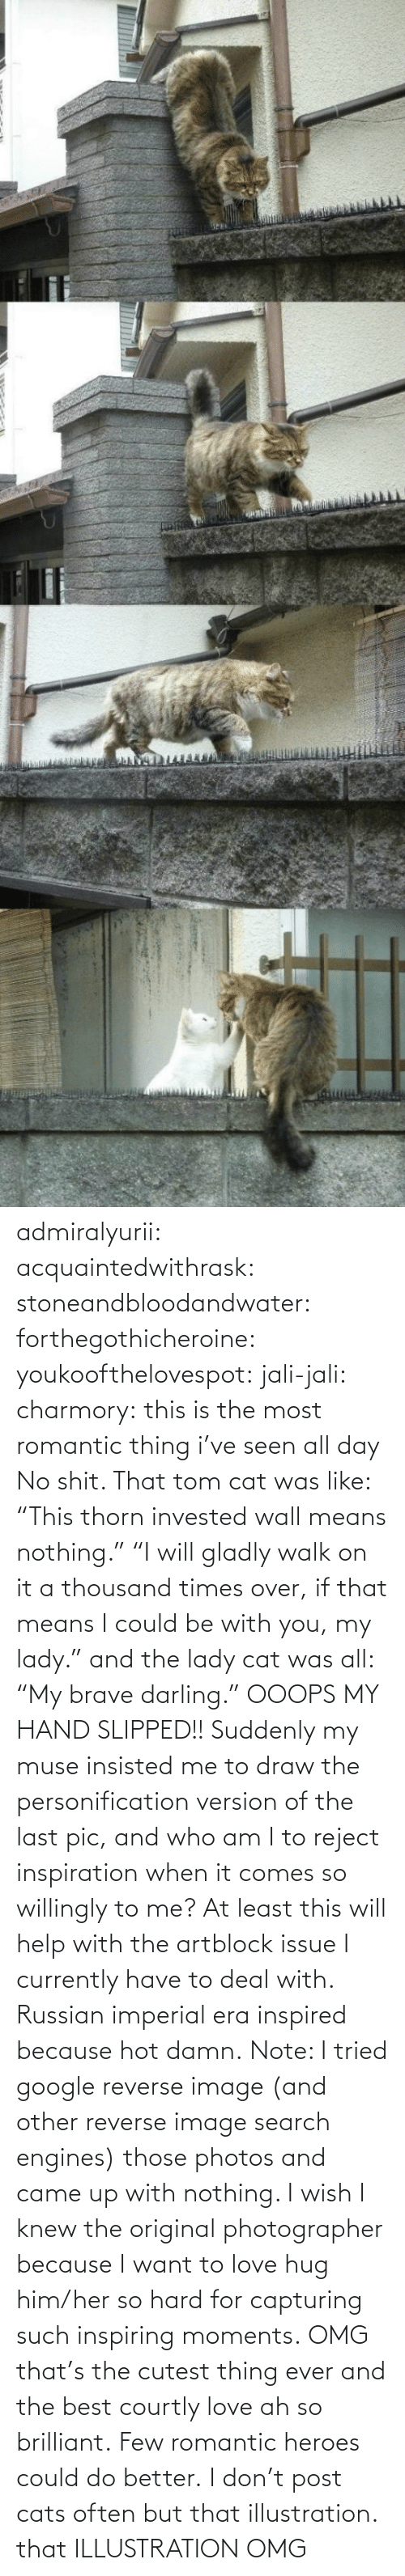 "Reverse: admiralyurii: acquaintedwithrask:  stoneandbloodandwater:  forthegothicheroine:  youkoofthelovespot:  jali-jali:  charmory:  this is the most romantic thing i've seen all day  No shit. That tom cat was like: ""This thorn invested wall means nothing."" ""I will gladly walk on it a thousand times over, if that means I could be with you, my lady."" and the lady cat was all: ""My brave darling."" OOOPS MY HAND SLIPPED!!  Suddenly my muse insisted me to draw the personification version of the last pic, and who am I to reject inspiration when it comes so willingly to me? At least this will help with the artblock issue I currently have to deal with. Russian imperial era inspired because hot damn. Note: I tried google reverse image (and other reverse image search engines) those photos and came up with nothing. I wish I knew the original photographer because I want to love hug him/her so hard for capturing such inspiring moments.  OMG that's the cutest thing ever and the best courtly love ah so brilliant.  Few romantic heroes could do better.  I don't post cats often but that illustration.  that ILLUSTRATION    OMG"